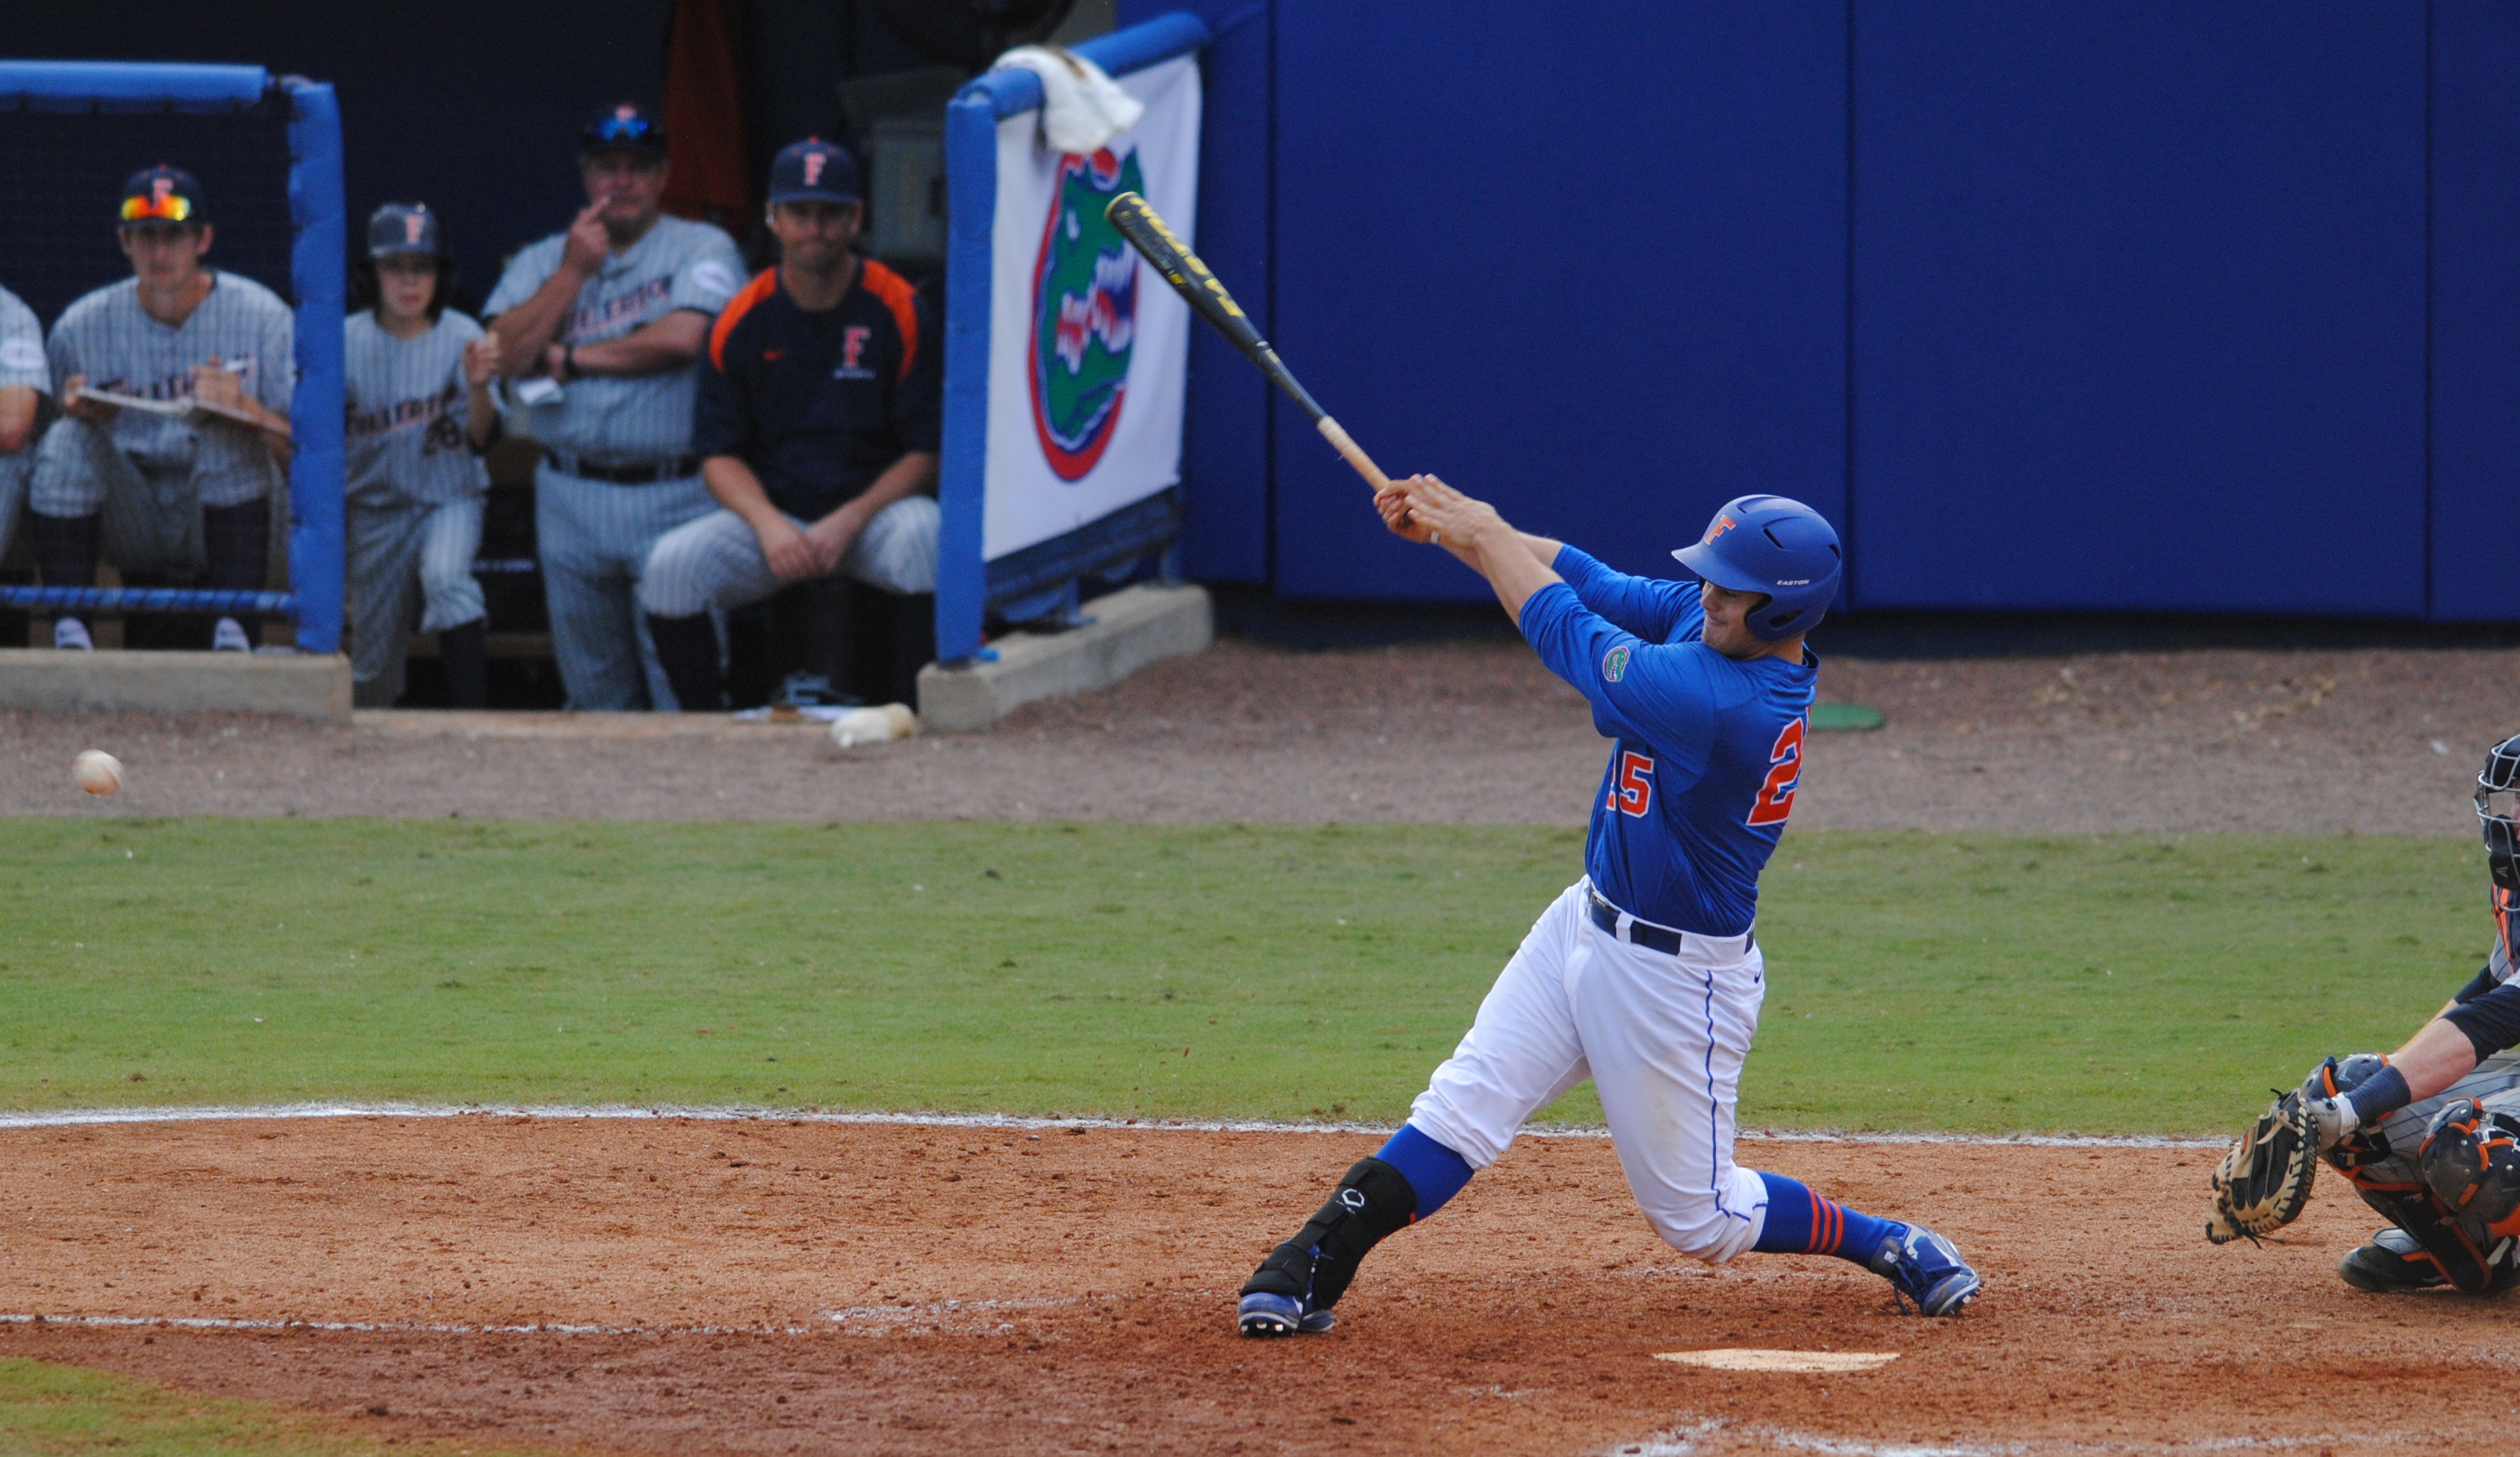 Senior Preston Tucker at bat.